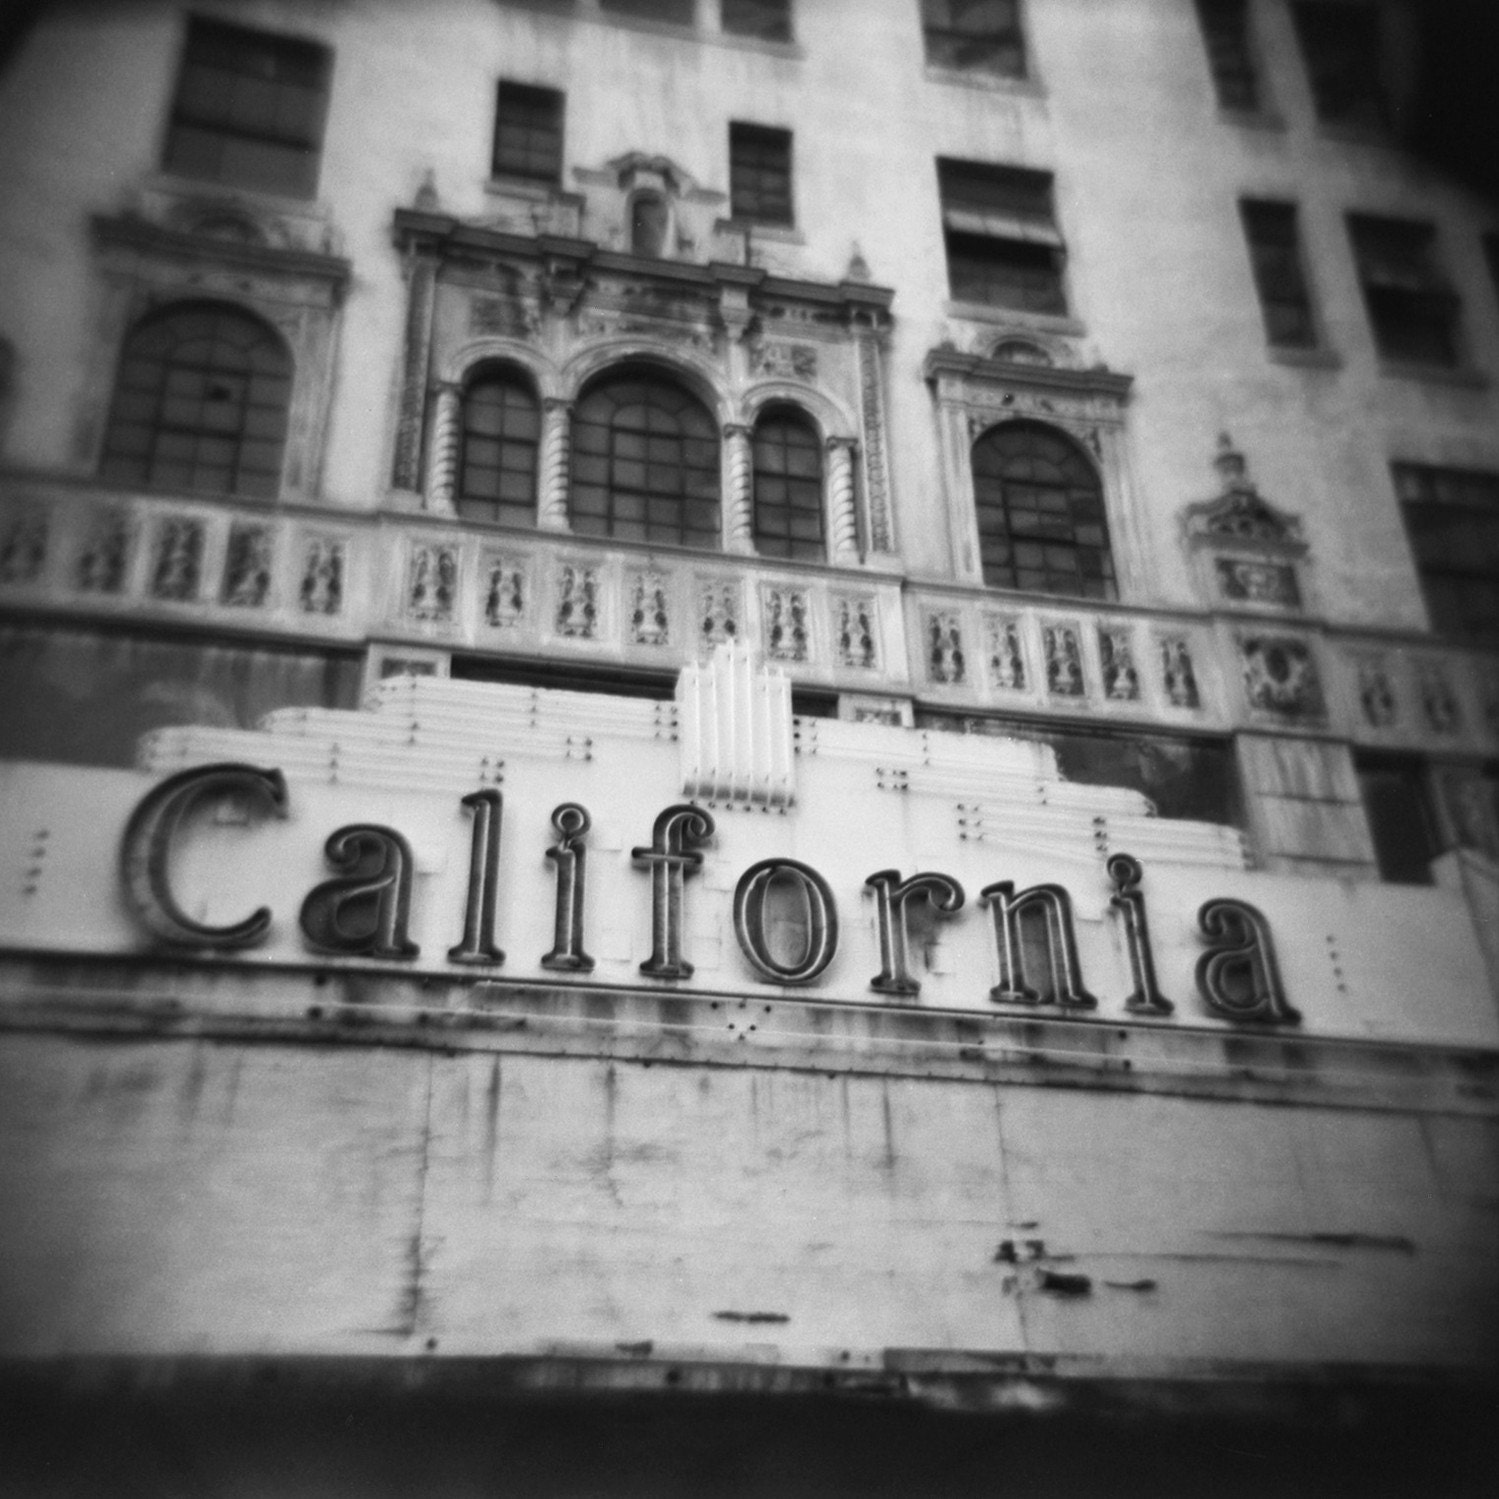 Black and White Photography - 8x8 Fine Art Photo Print - Vintage California Theater